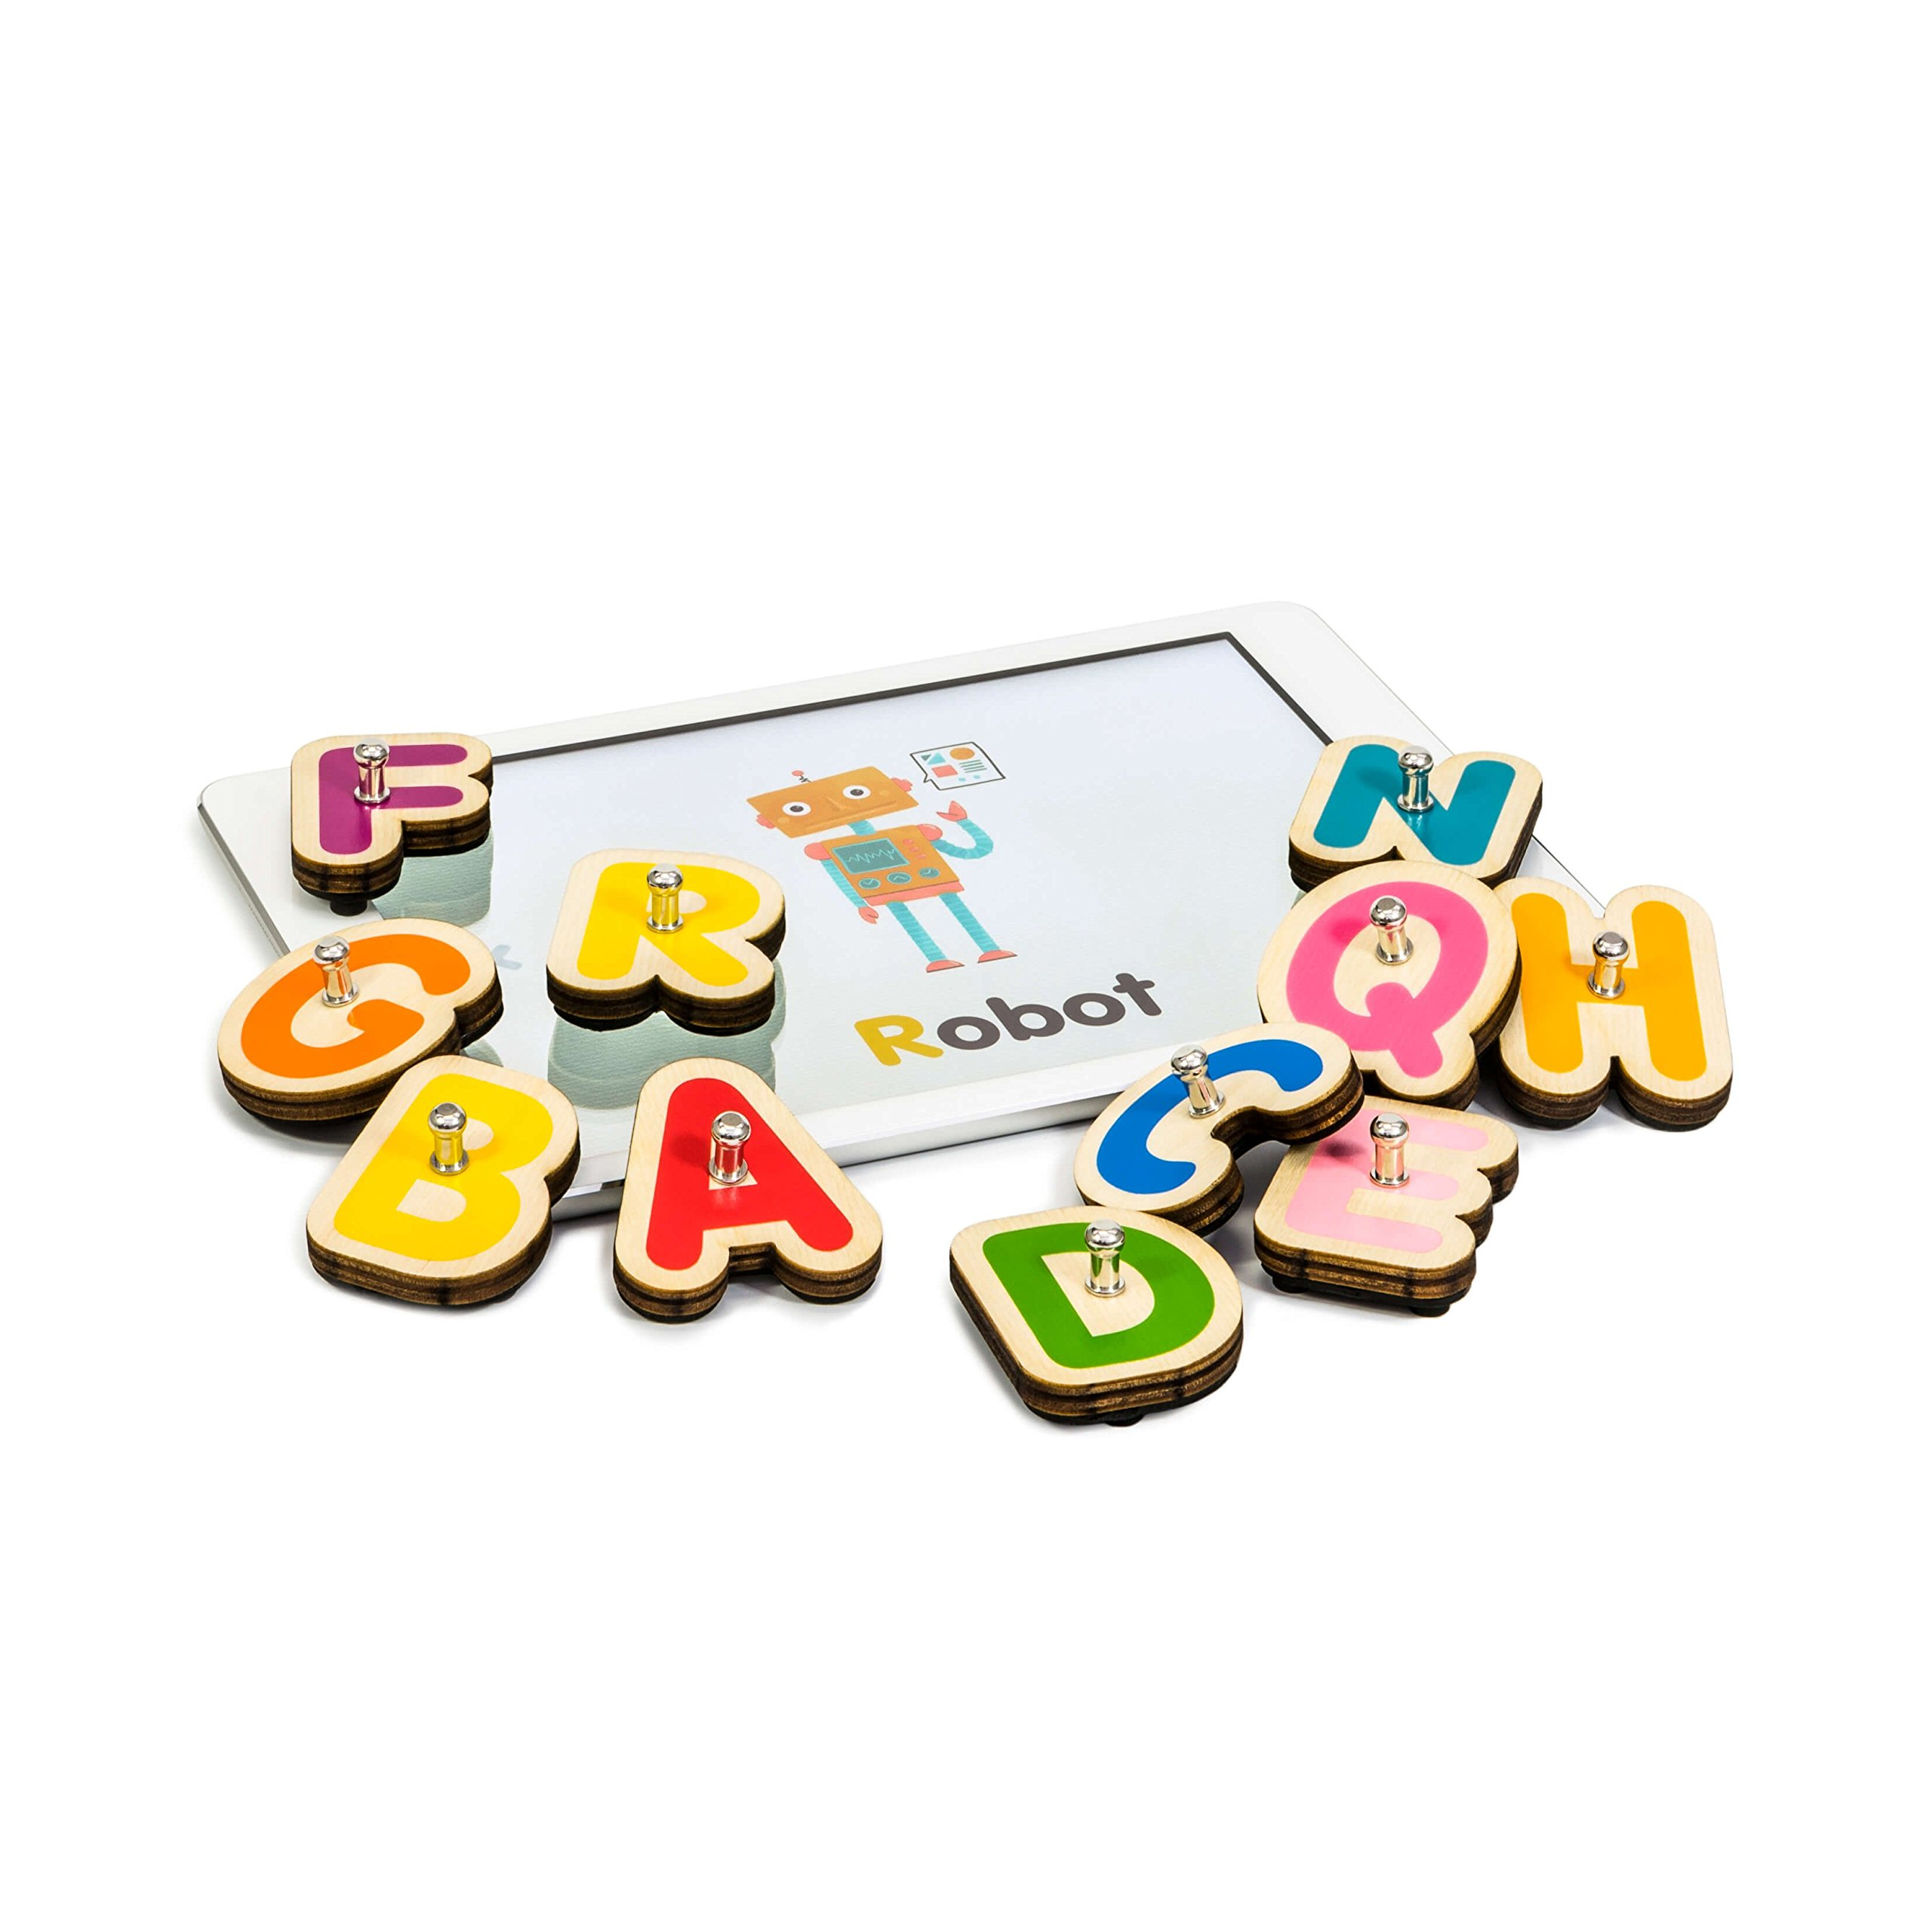 Marbotic Smart Letters - Interactive alphabet toys for tablet